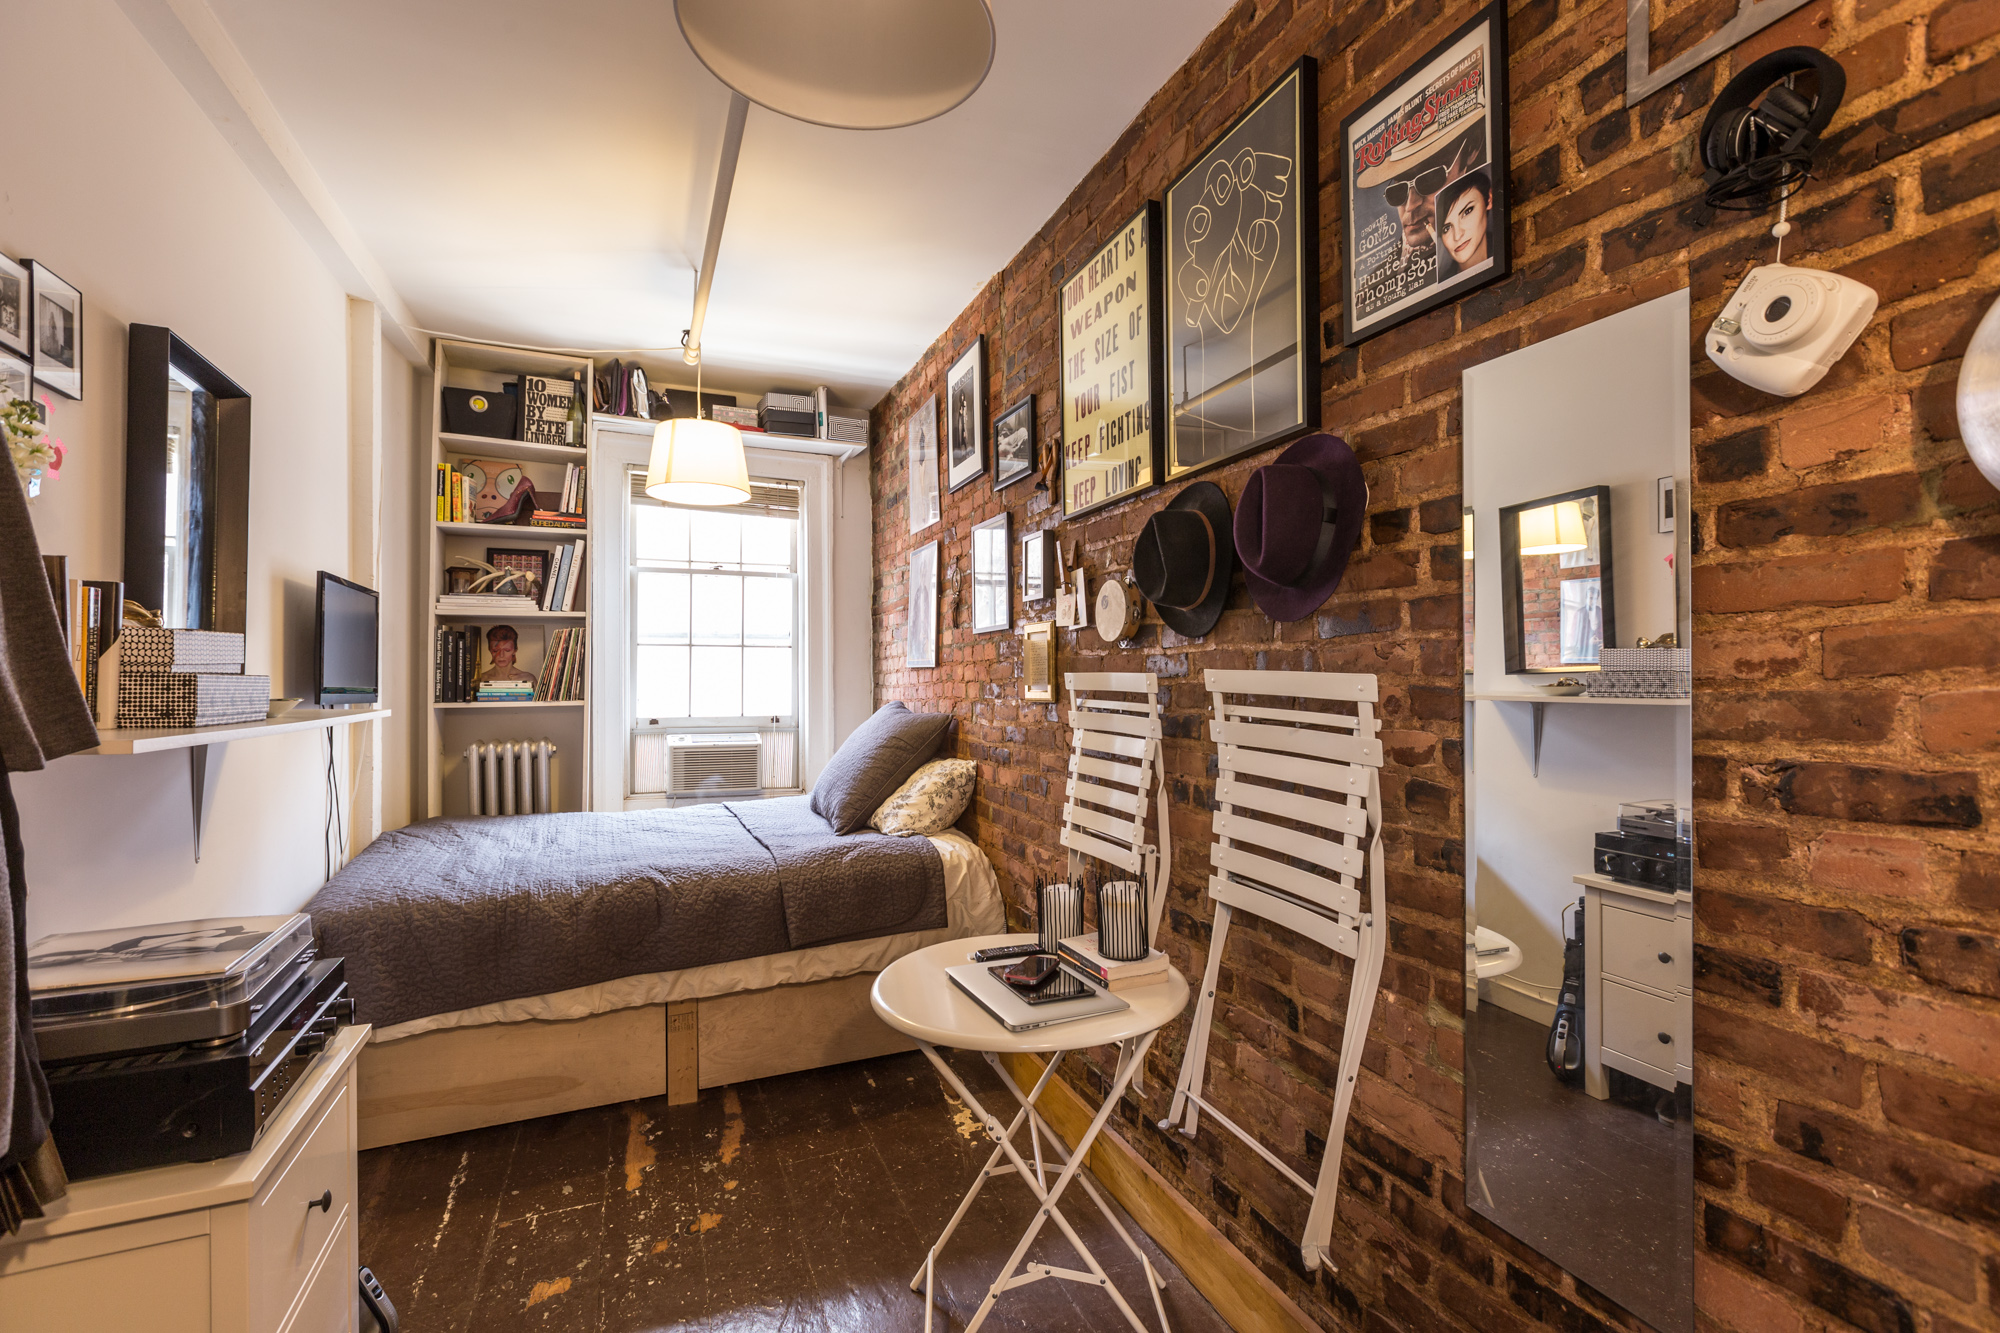 9 New York City Micro Apartments That Bolster The Tiny Living Trend Curbed Ny